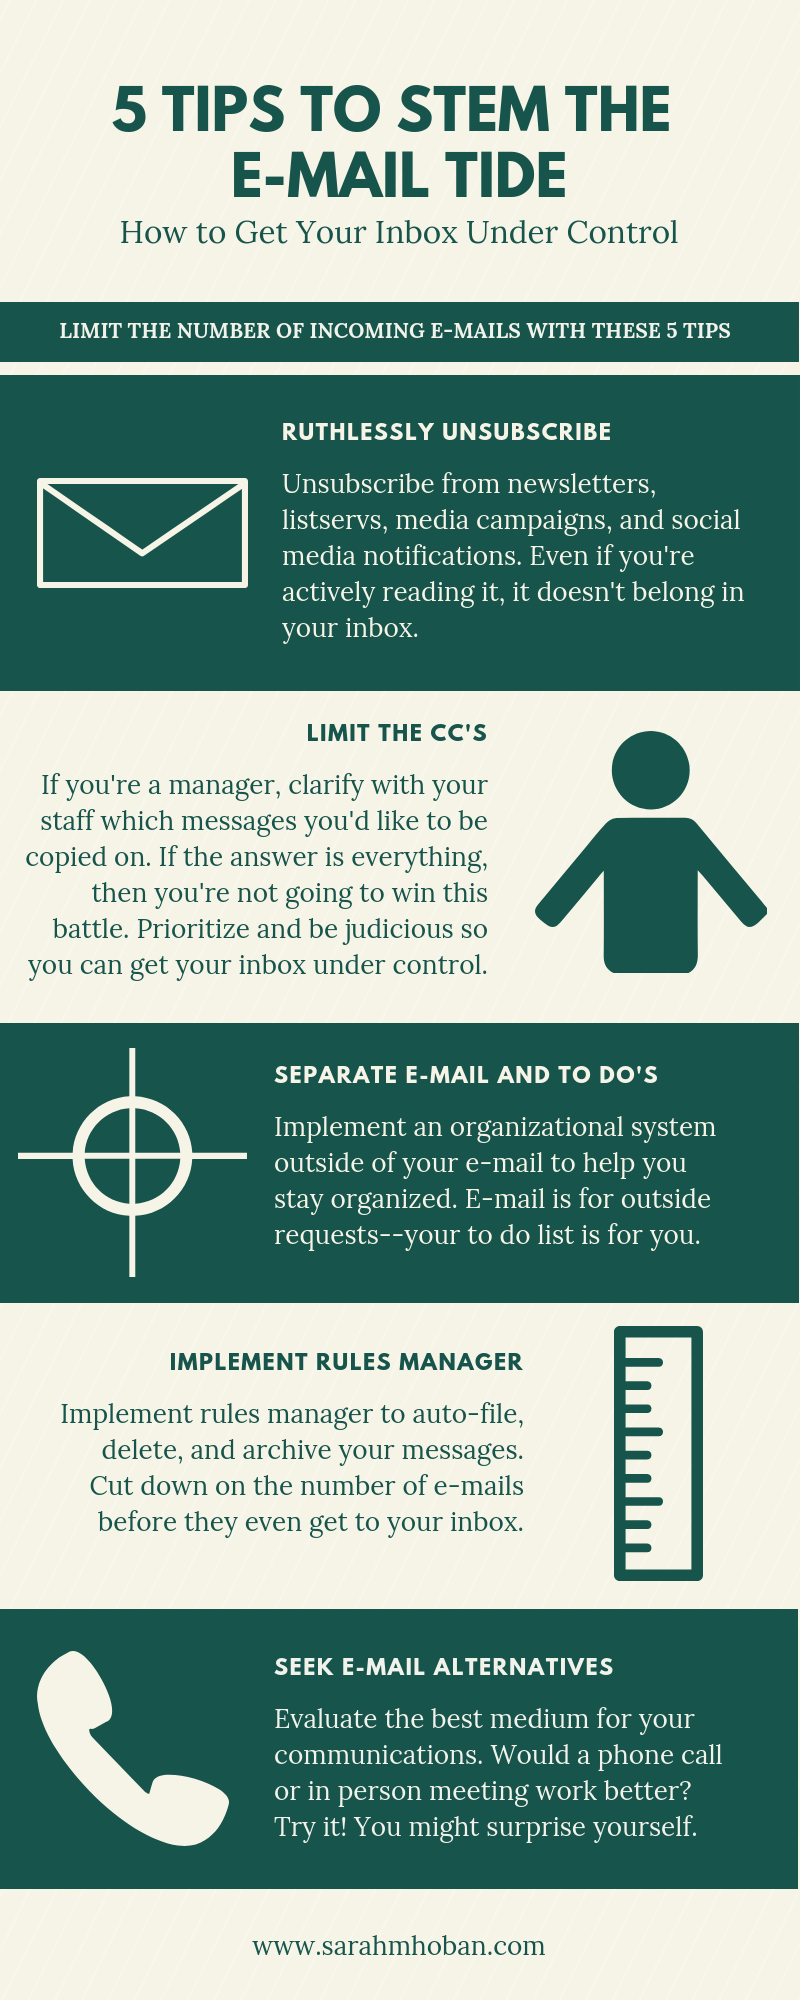 5 Tips to Stem the E-mail Tide.png